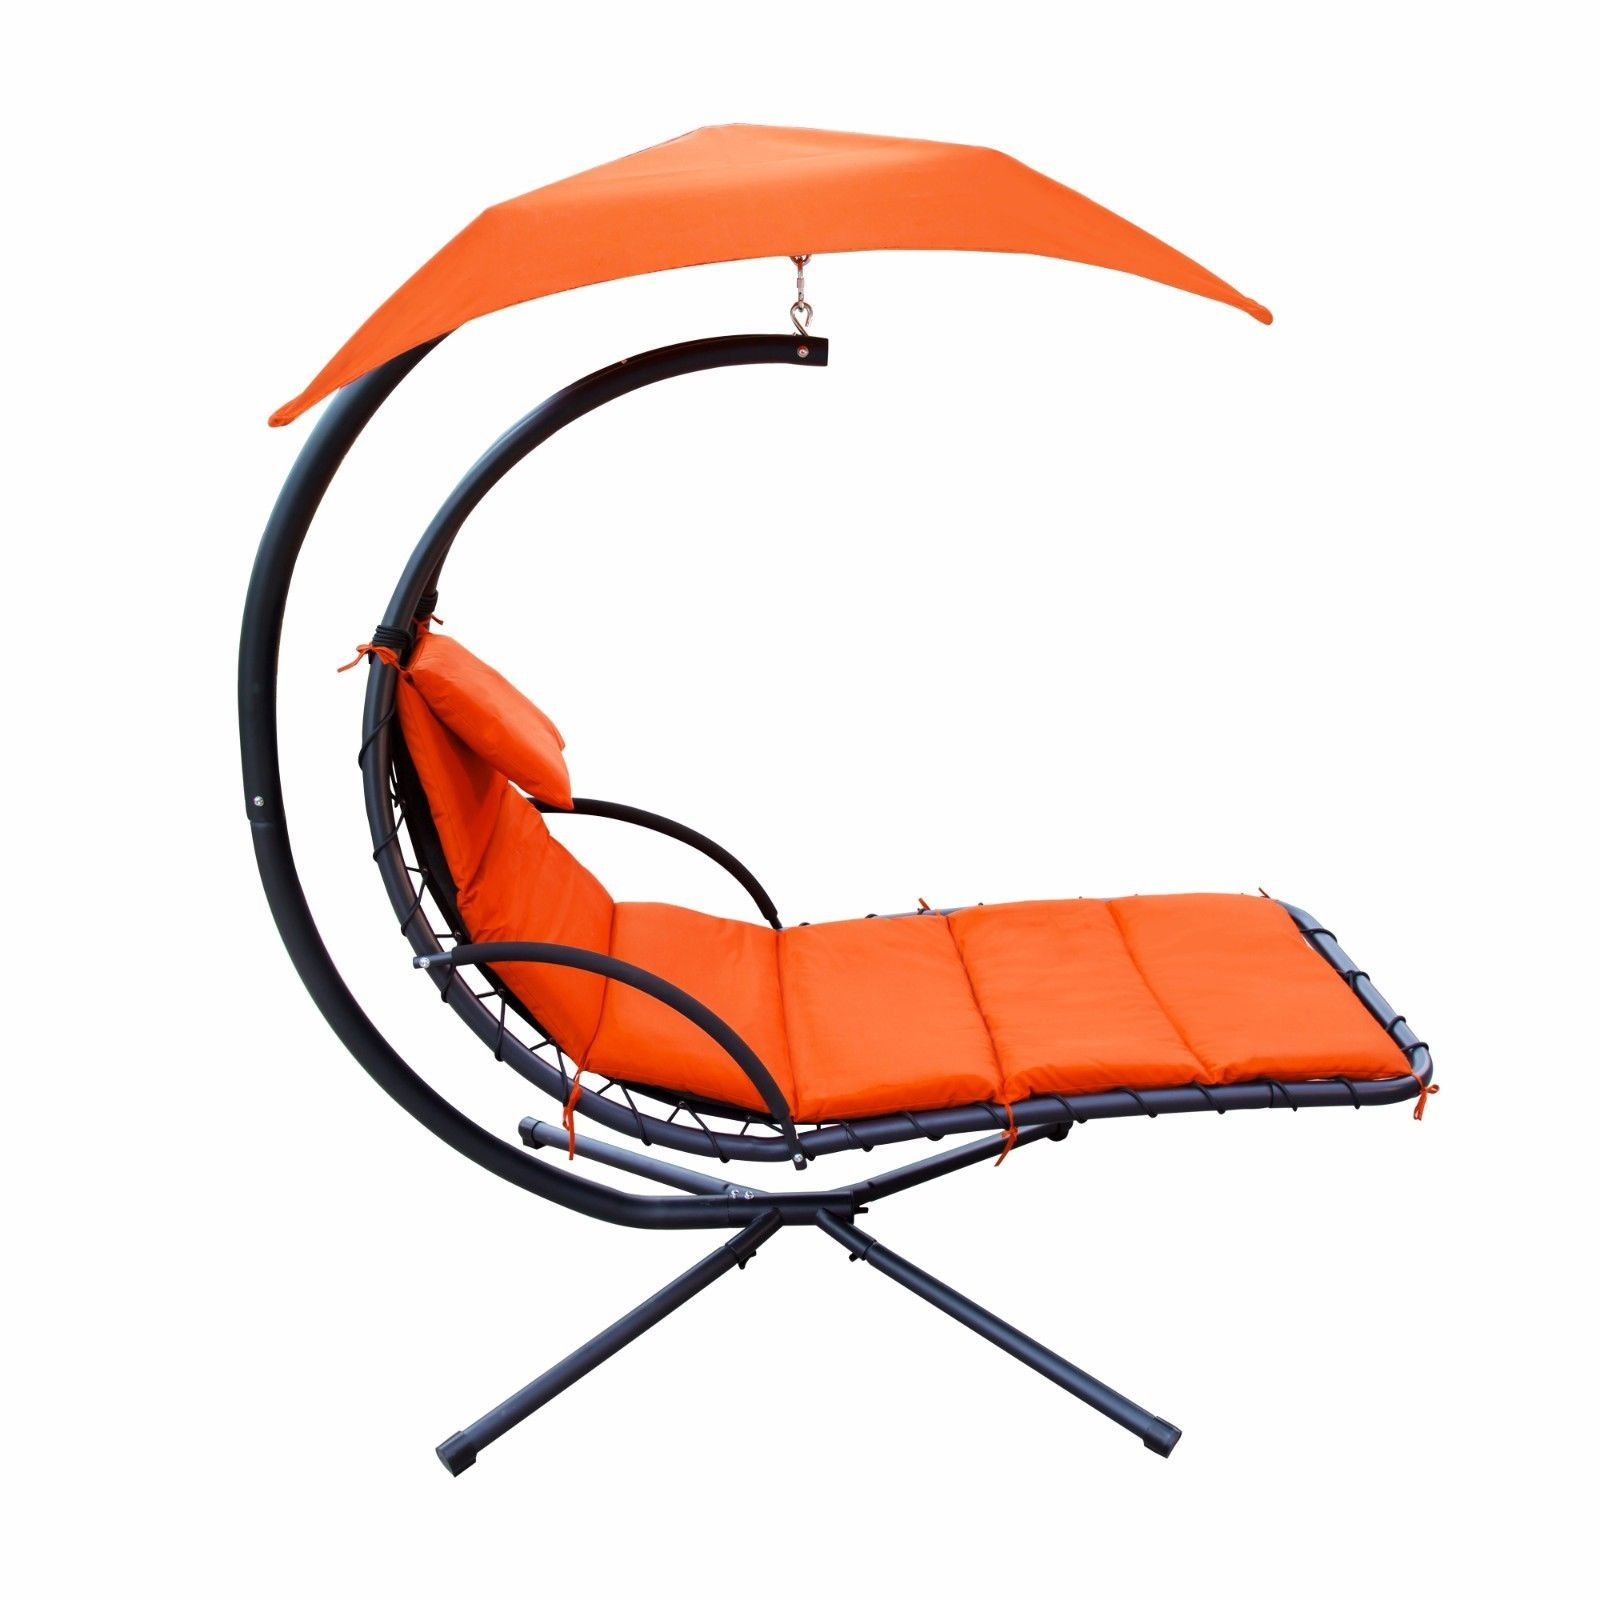 Hanging Chaise Lounger Chair Air Porch Swing Hammock Arc Stand Umbrella Orange